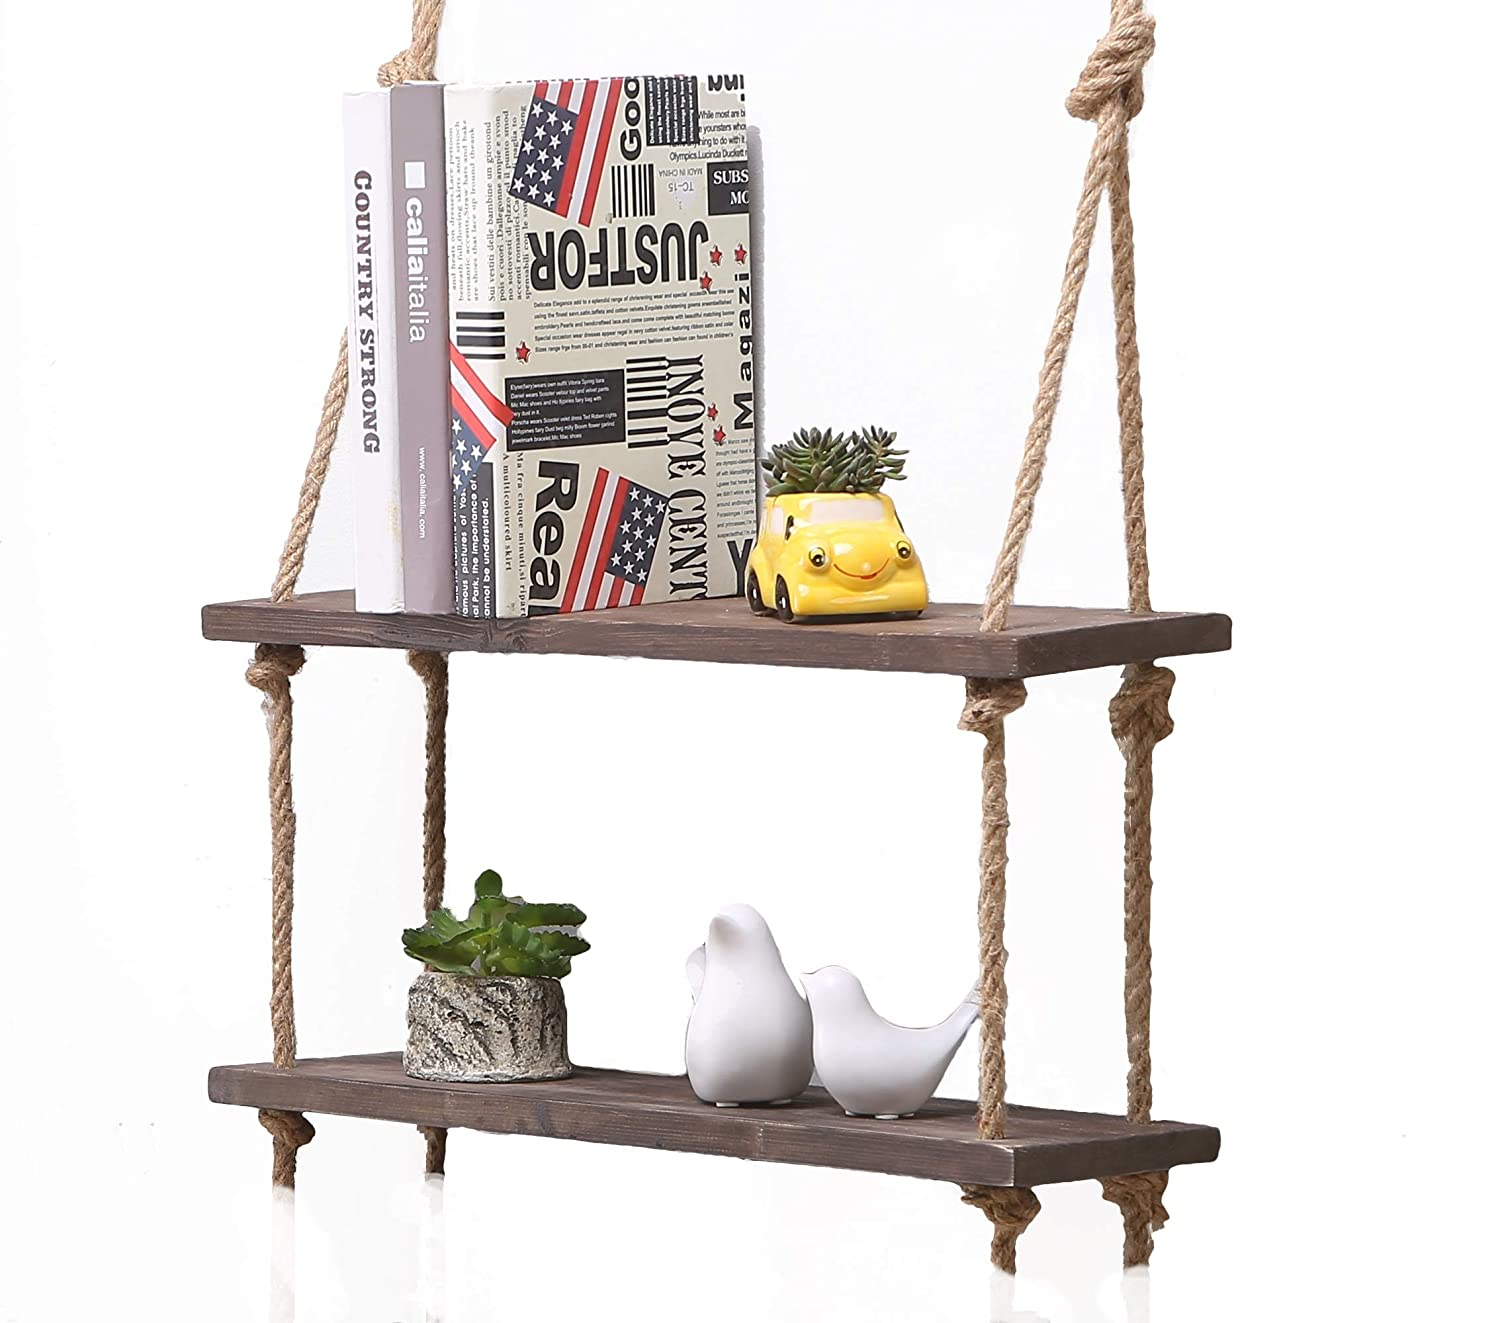 Easy Chic Solid Wood Wall Shelf Storage Floating Wall Shelf Rustic Vintage Wooden Rope Shelf (Natural, 2 Shelves) YYMG Homeware